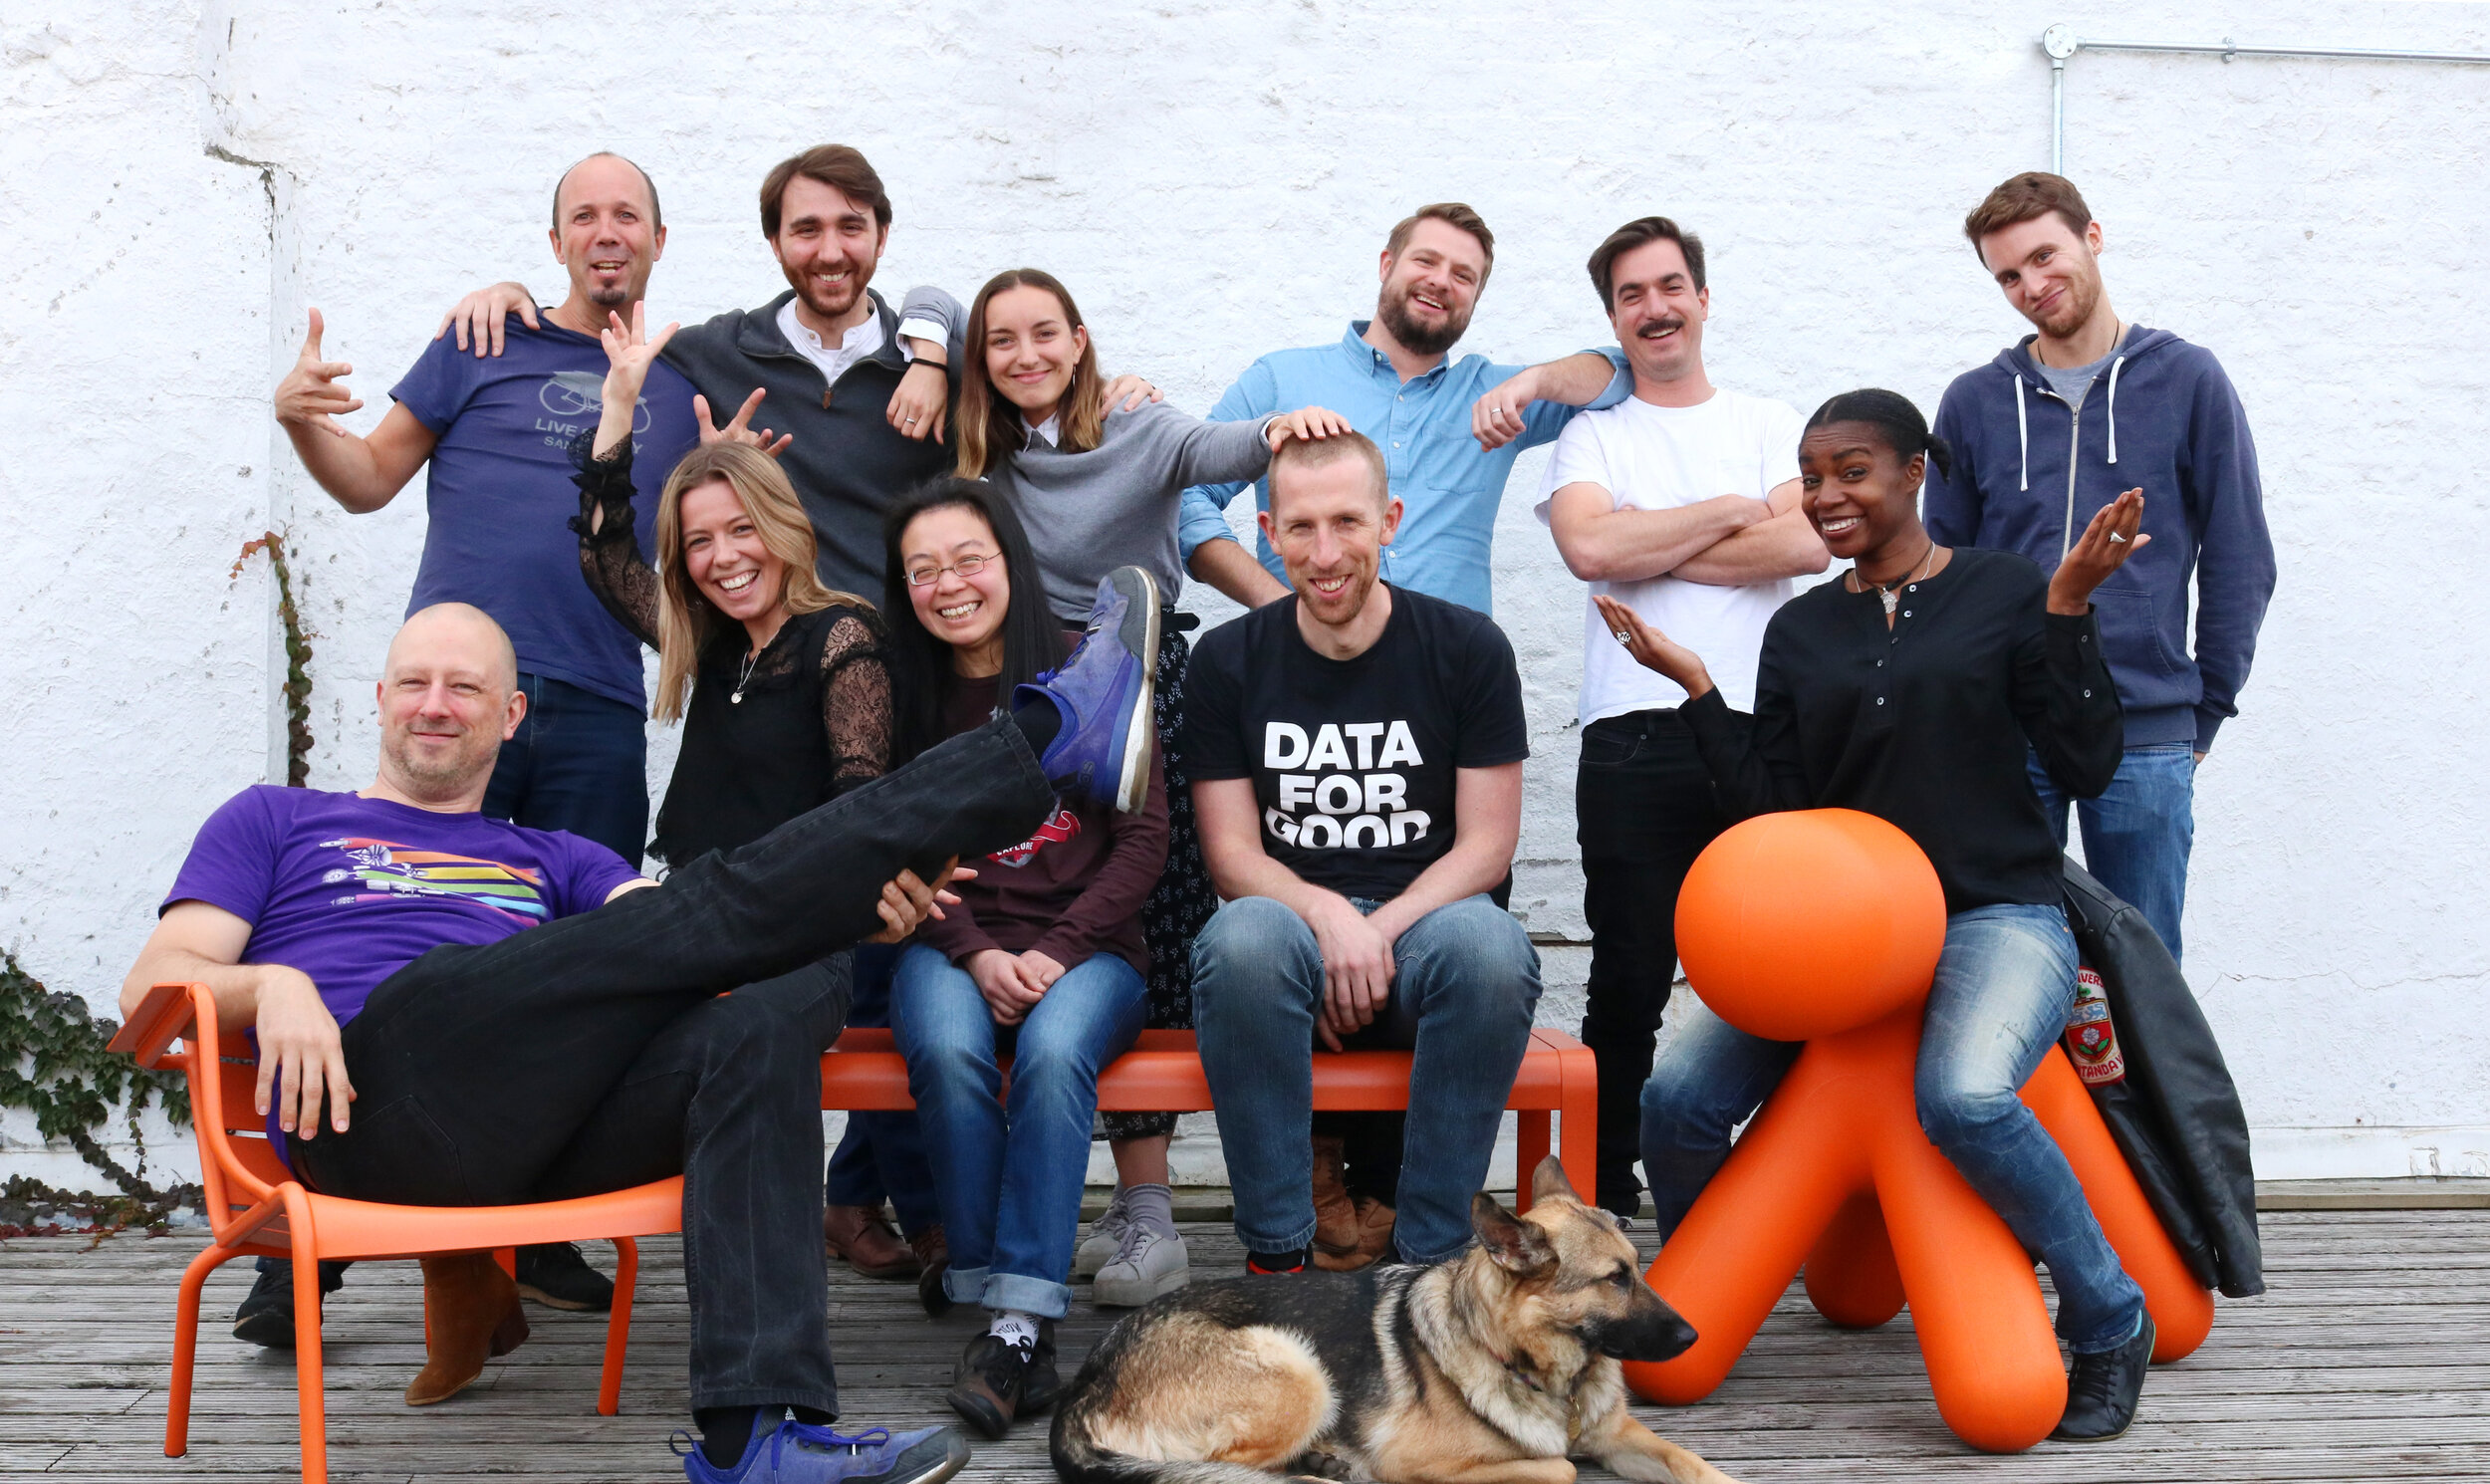 UK Team in London… spot our camera shy team mascot, Quito.